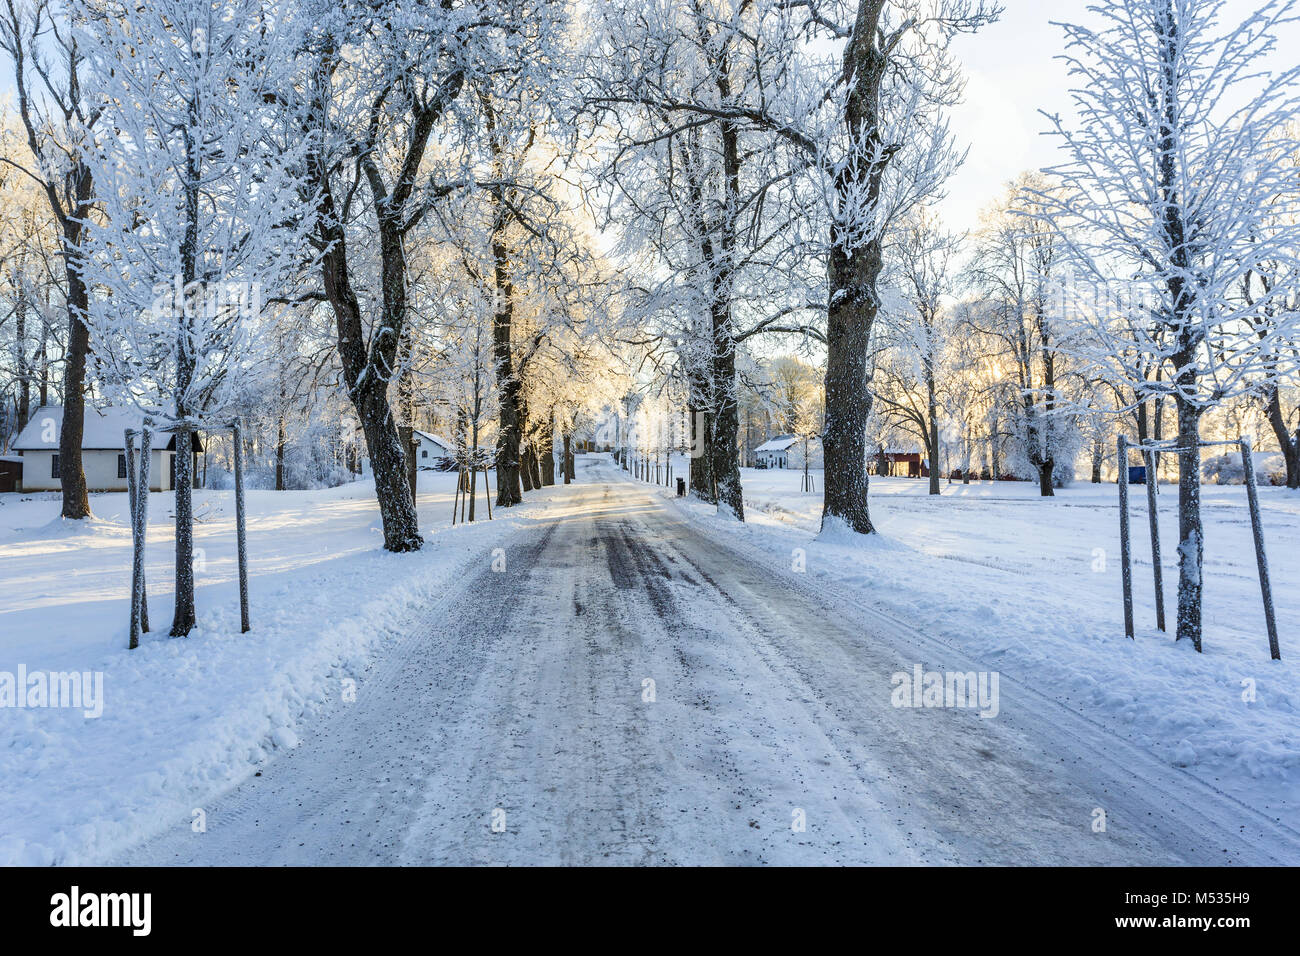 Slippery winter road through a tree avenue - Stock Image